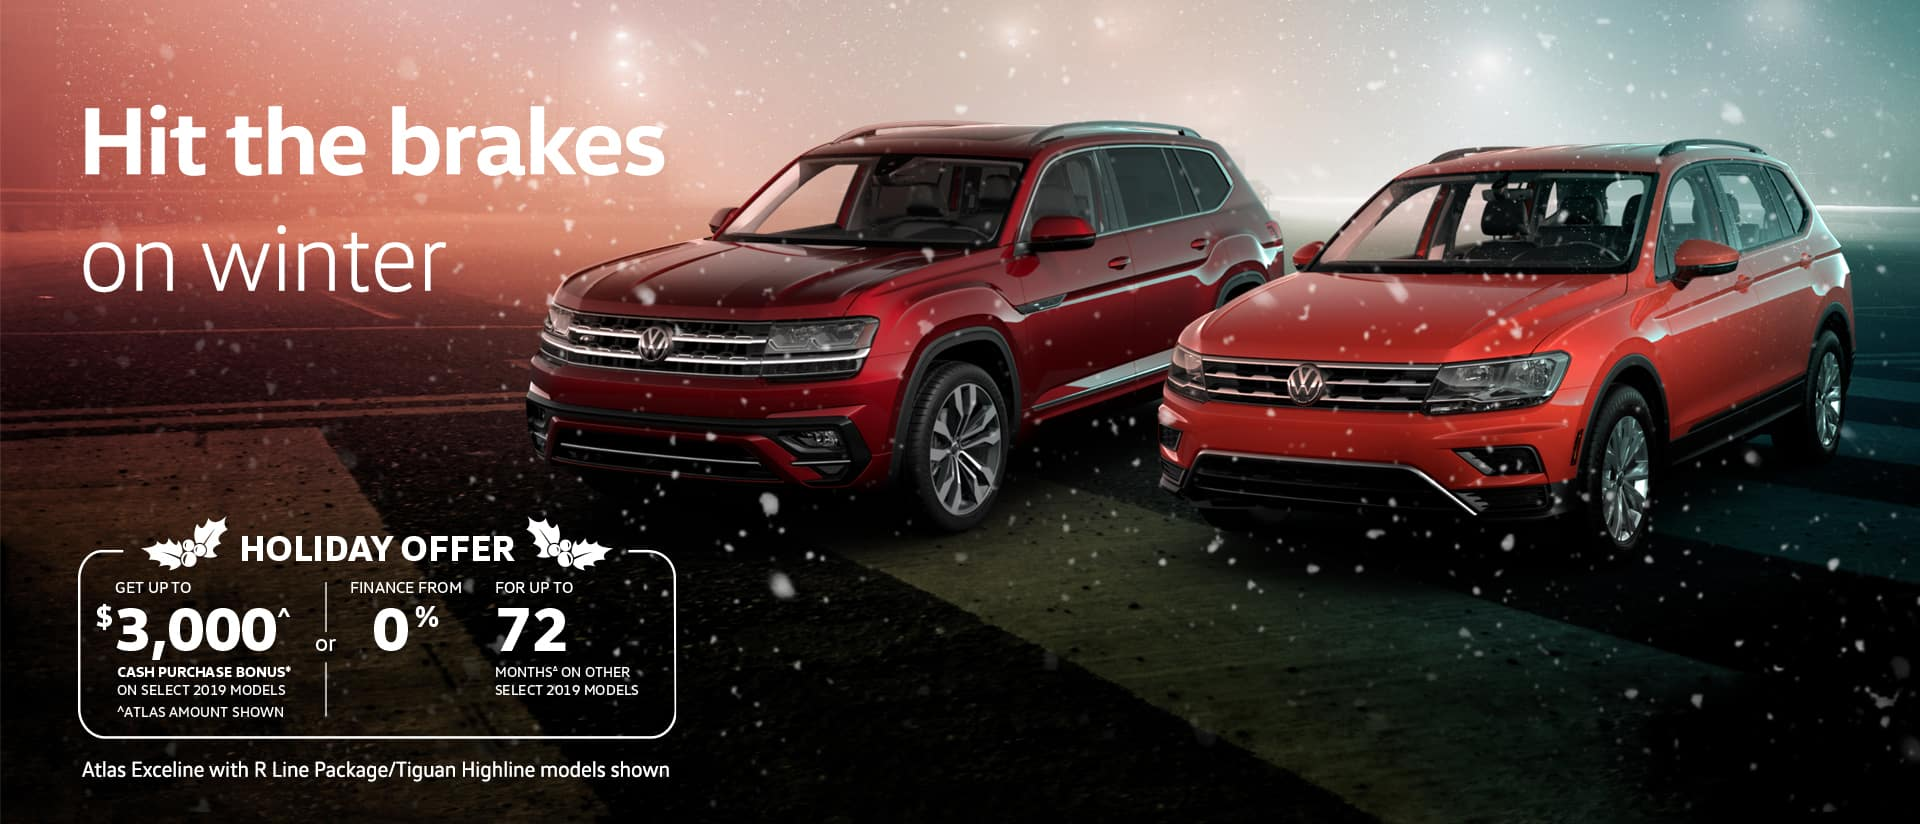 red and orange volkswagen suvs with snowflakes falling